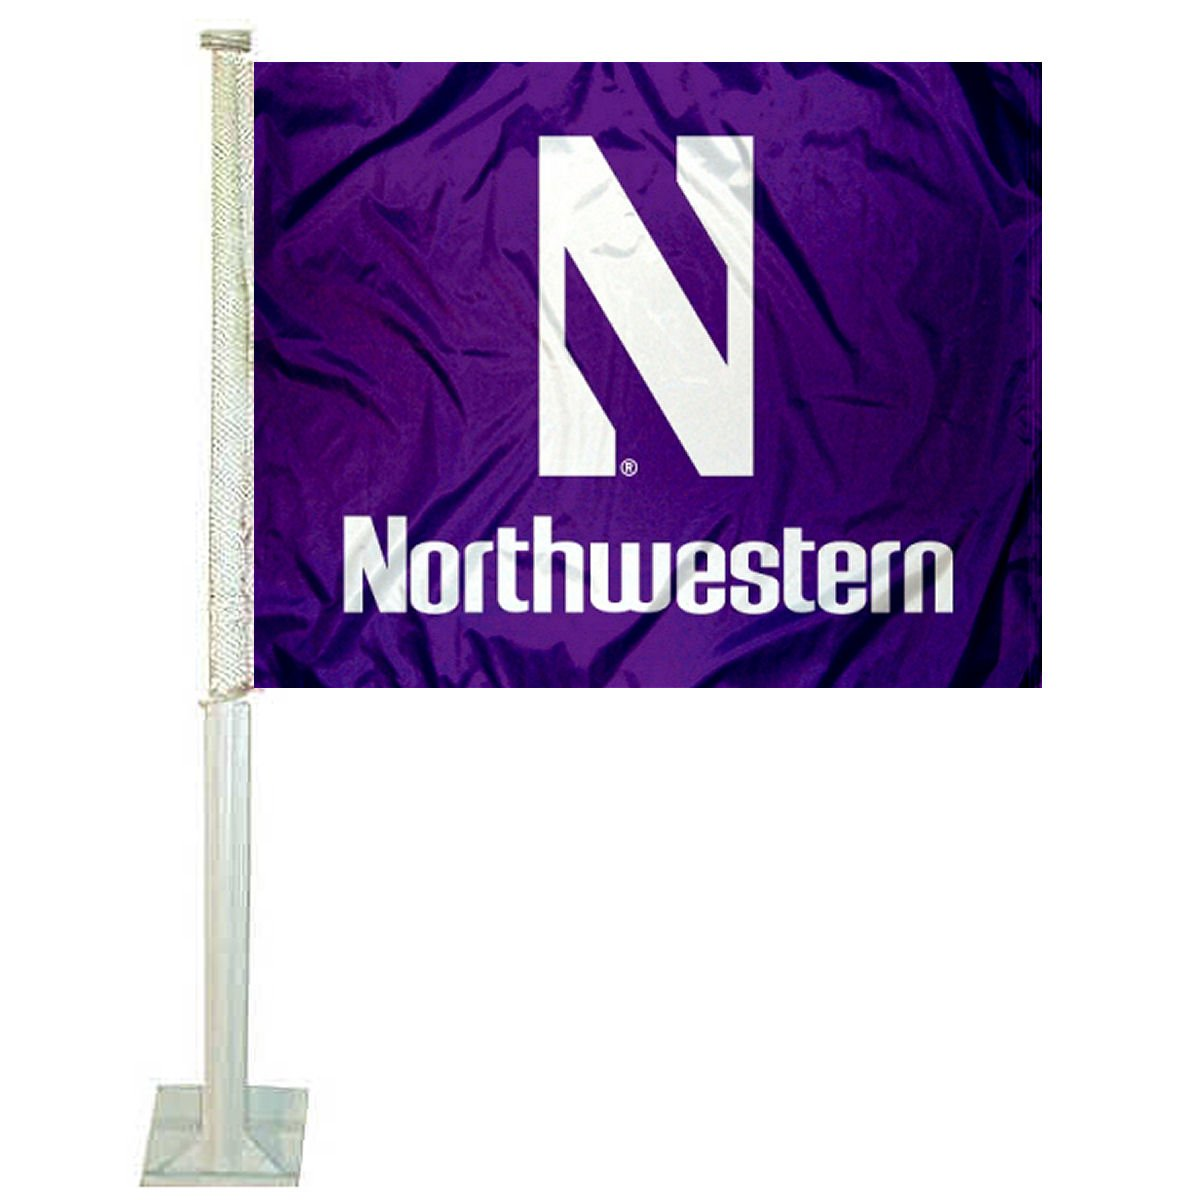 Northwestern Wildcats Car Flag College Flags and Banners Co.